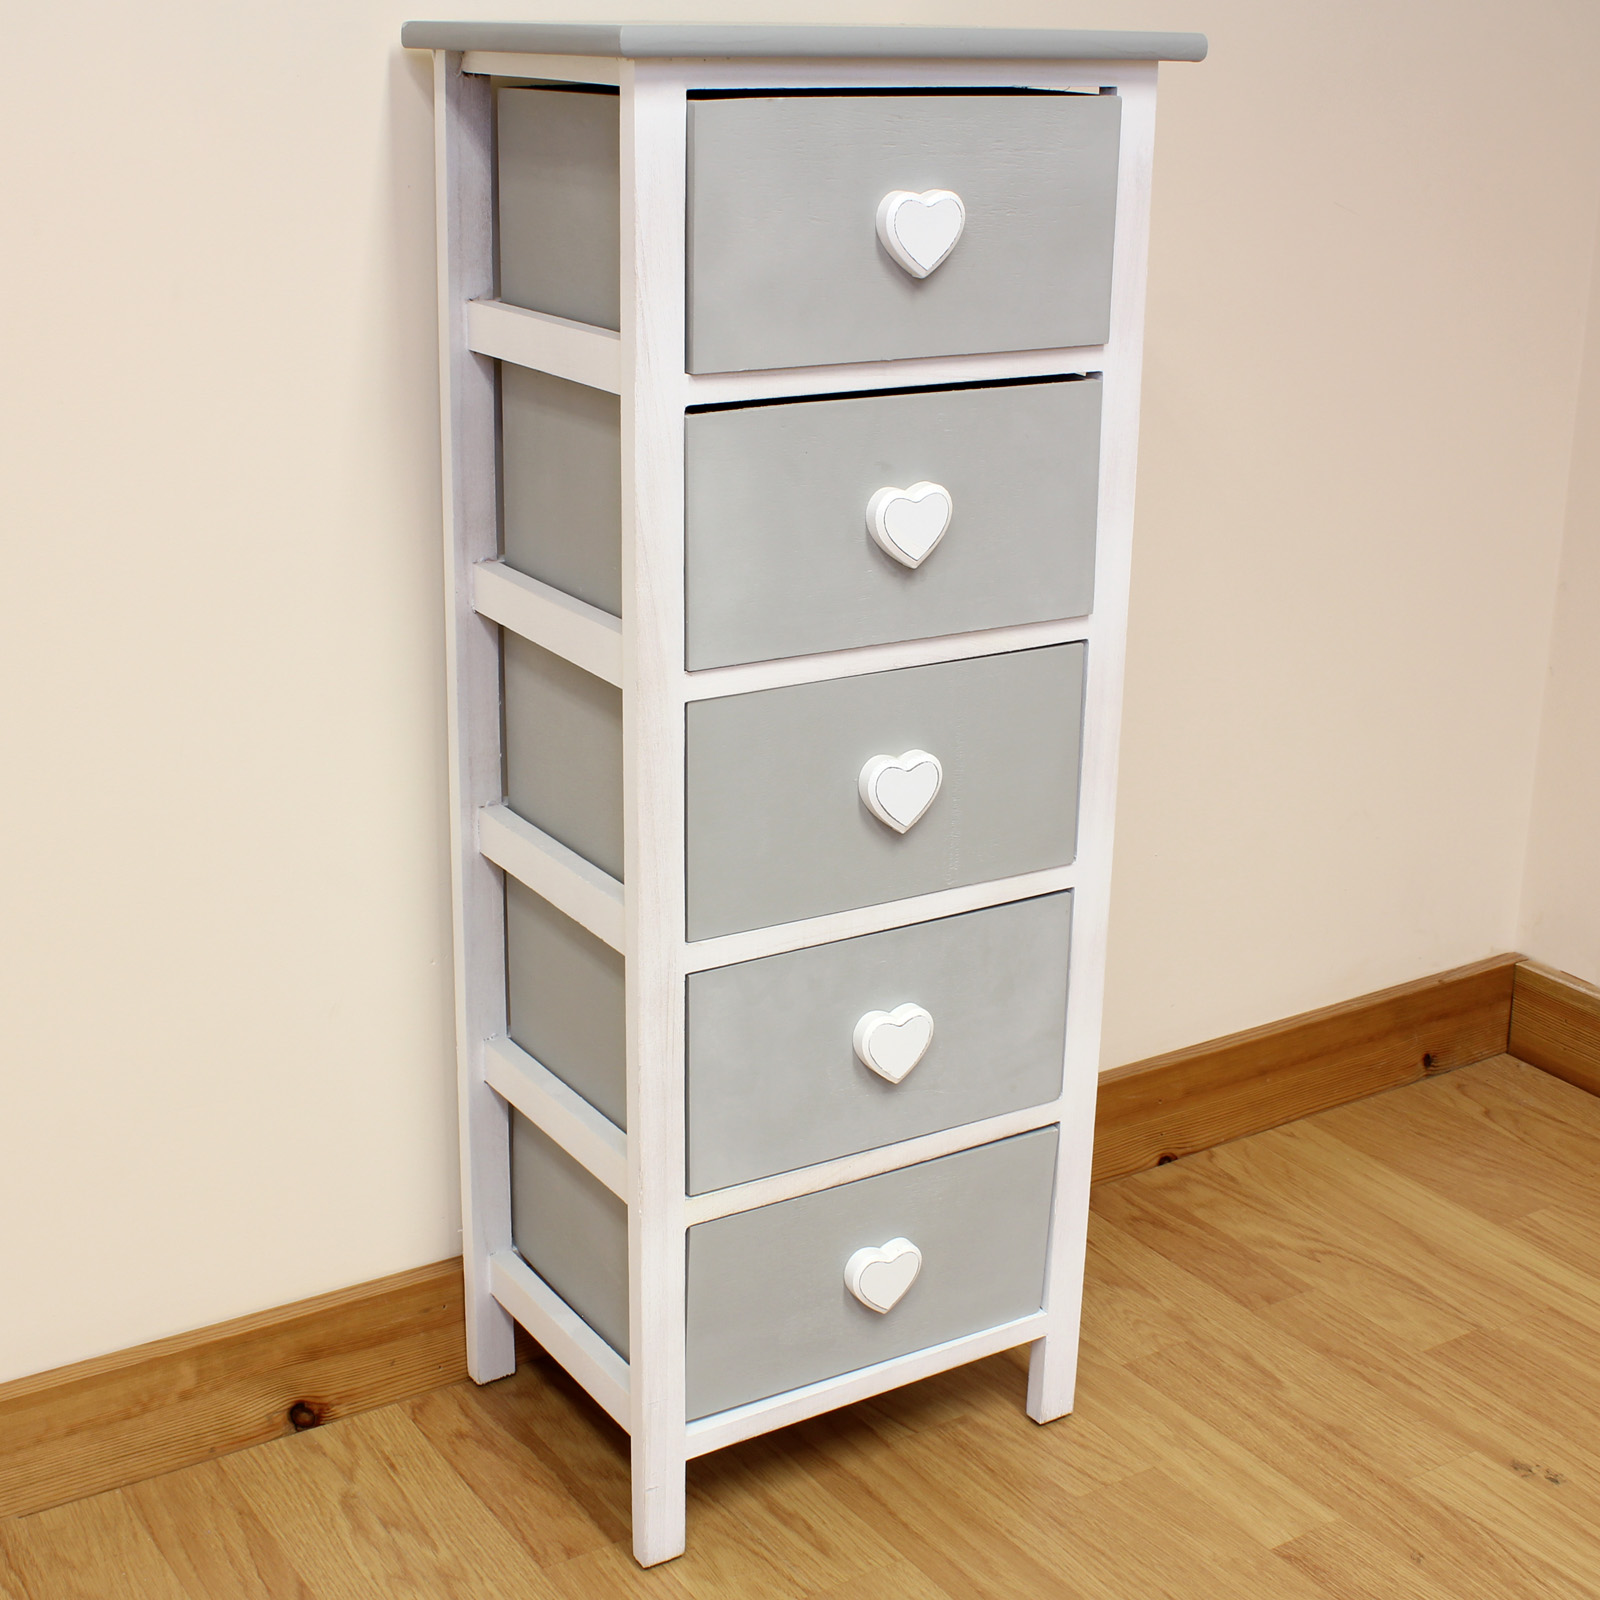 HARTLEYS WHITE & GREY 5 DRAWER HEART STORAGE UNIT CHEST OF DRAWERS